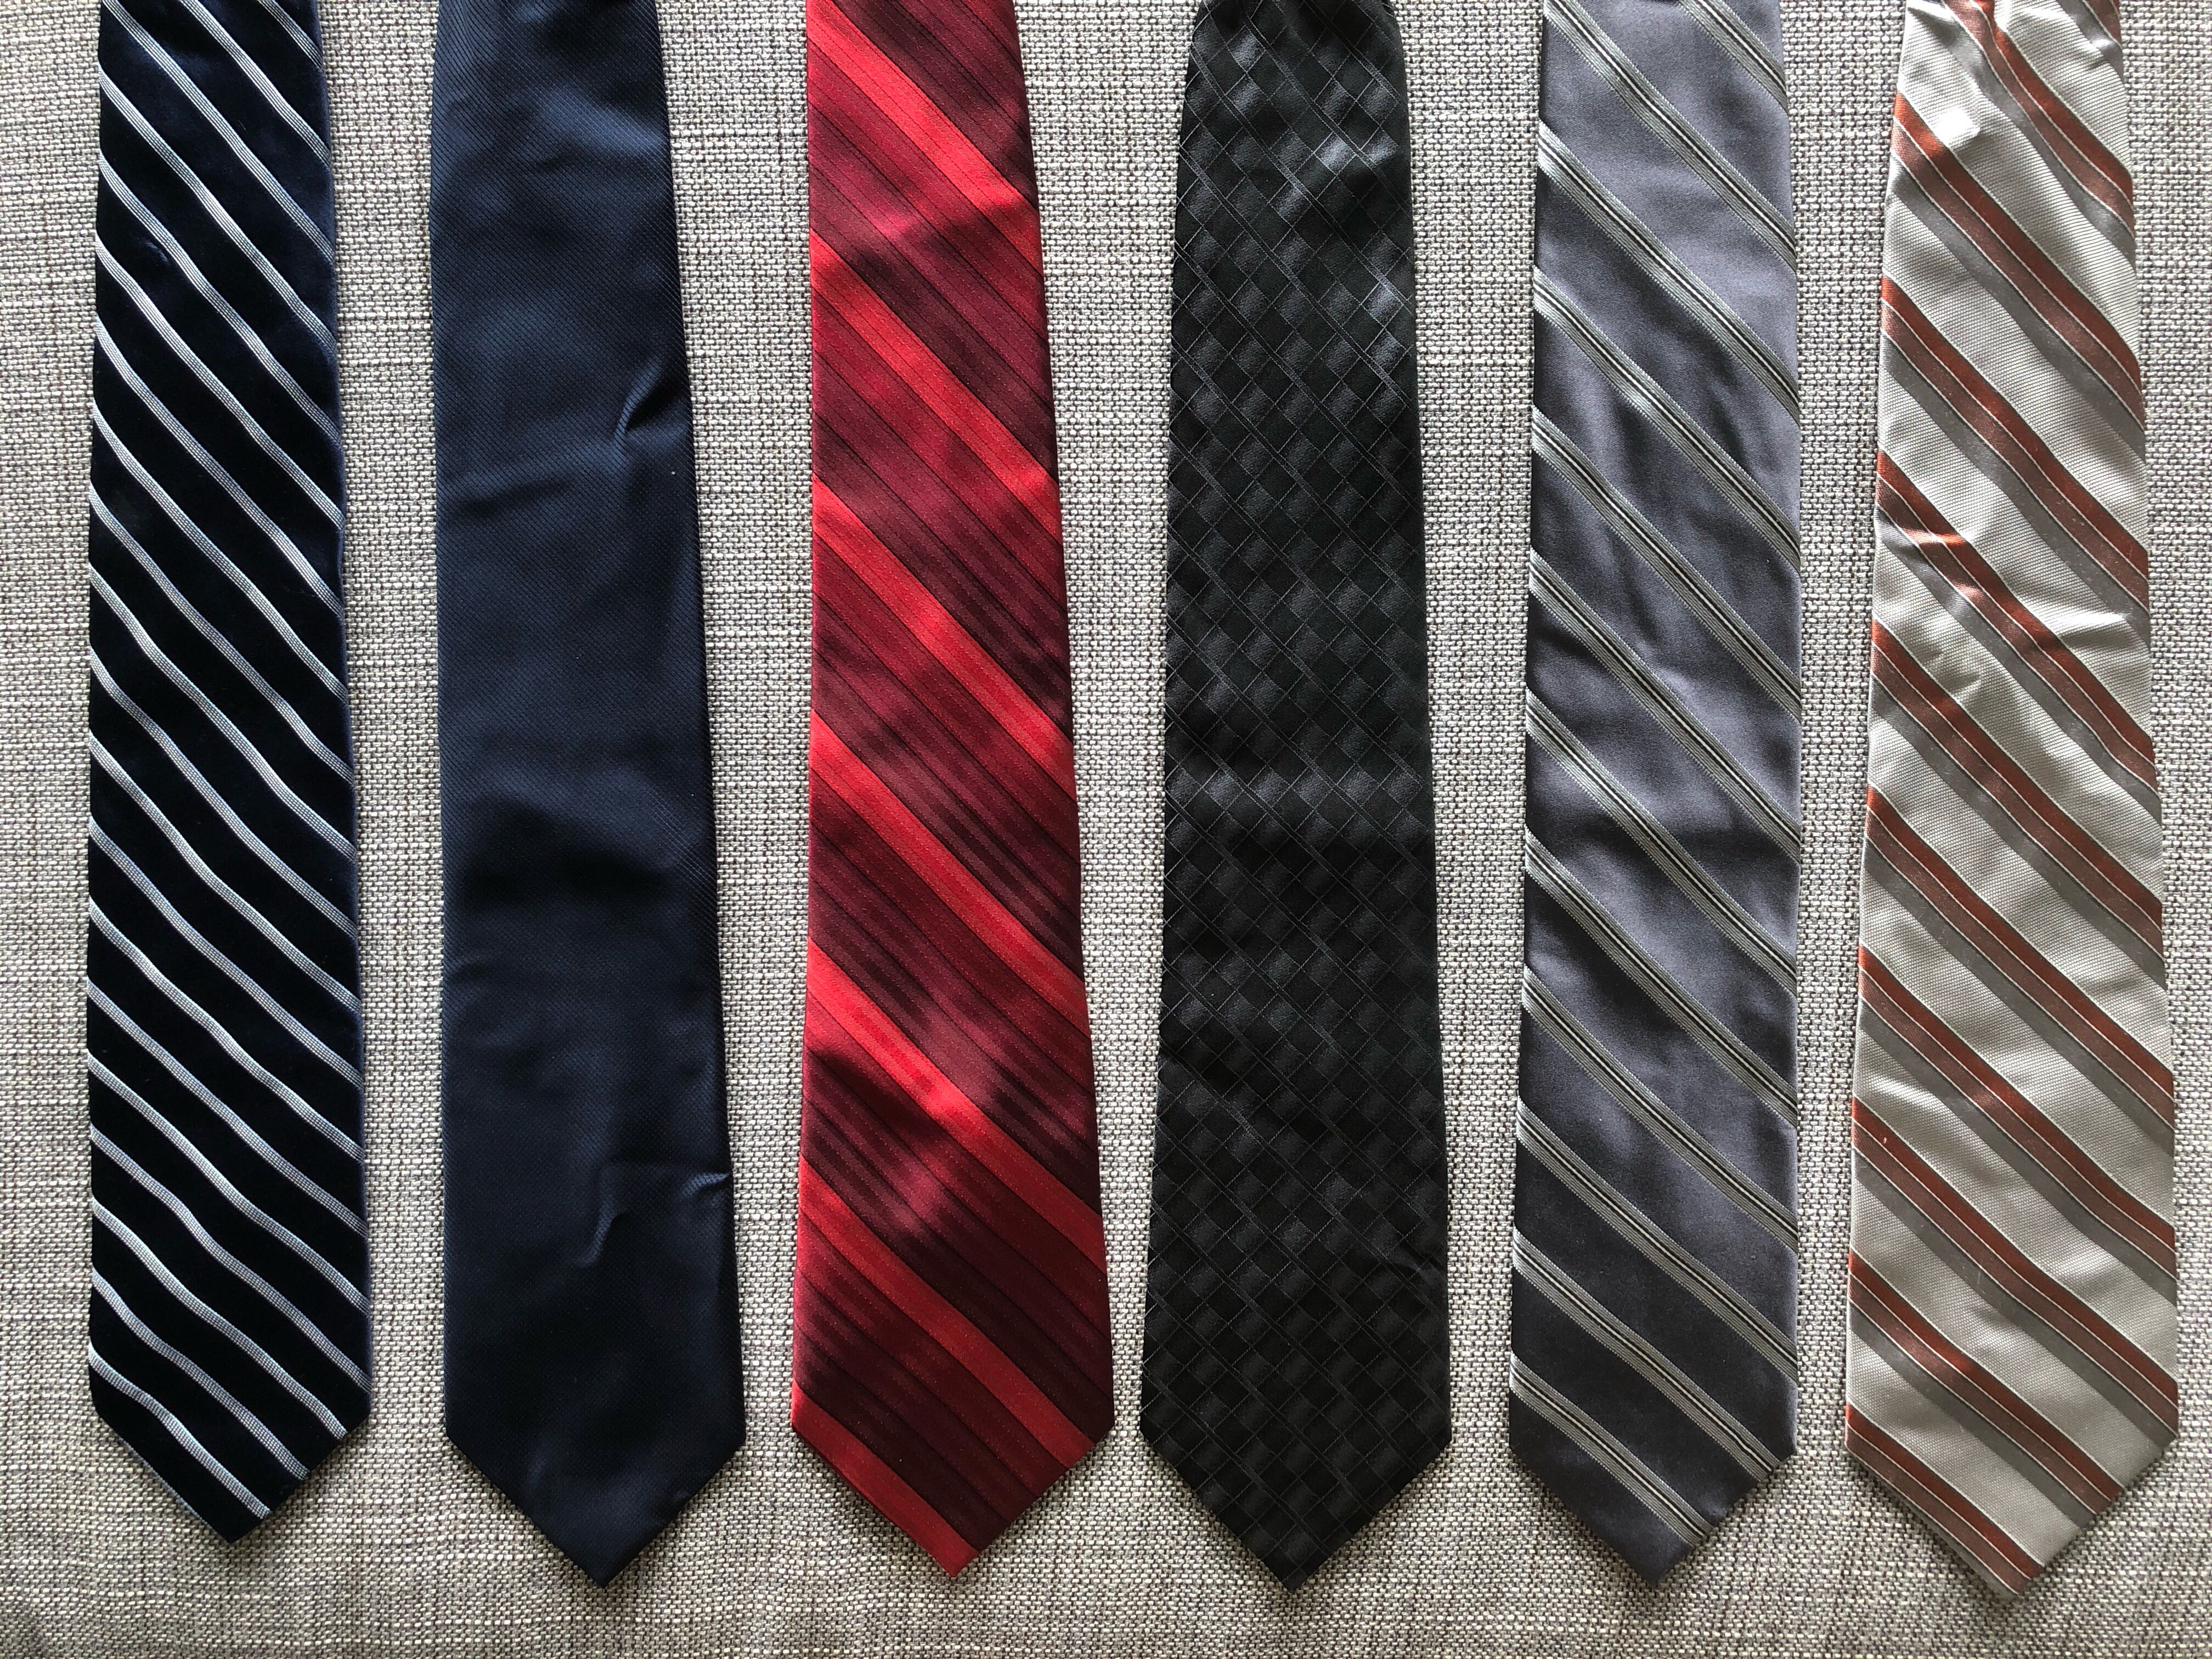 f7699051db36 Home · Men's Fashion · Accessories · Ties & Formals. photo photo photo photo